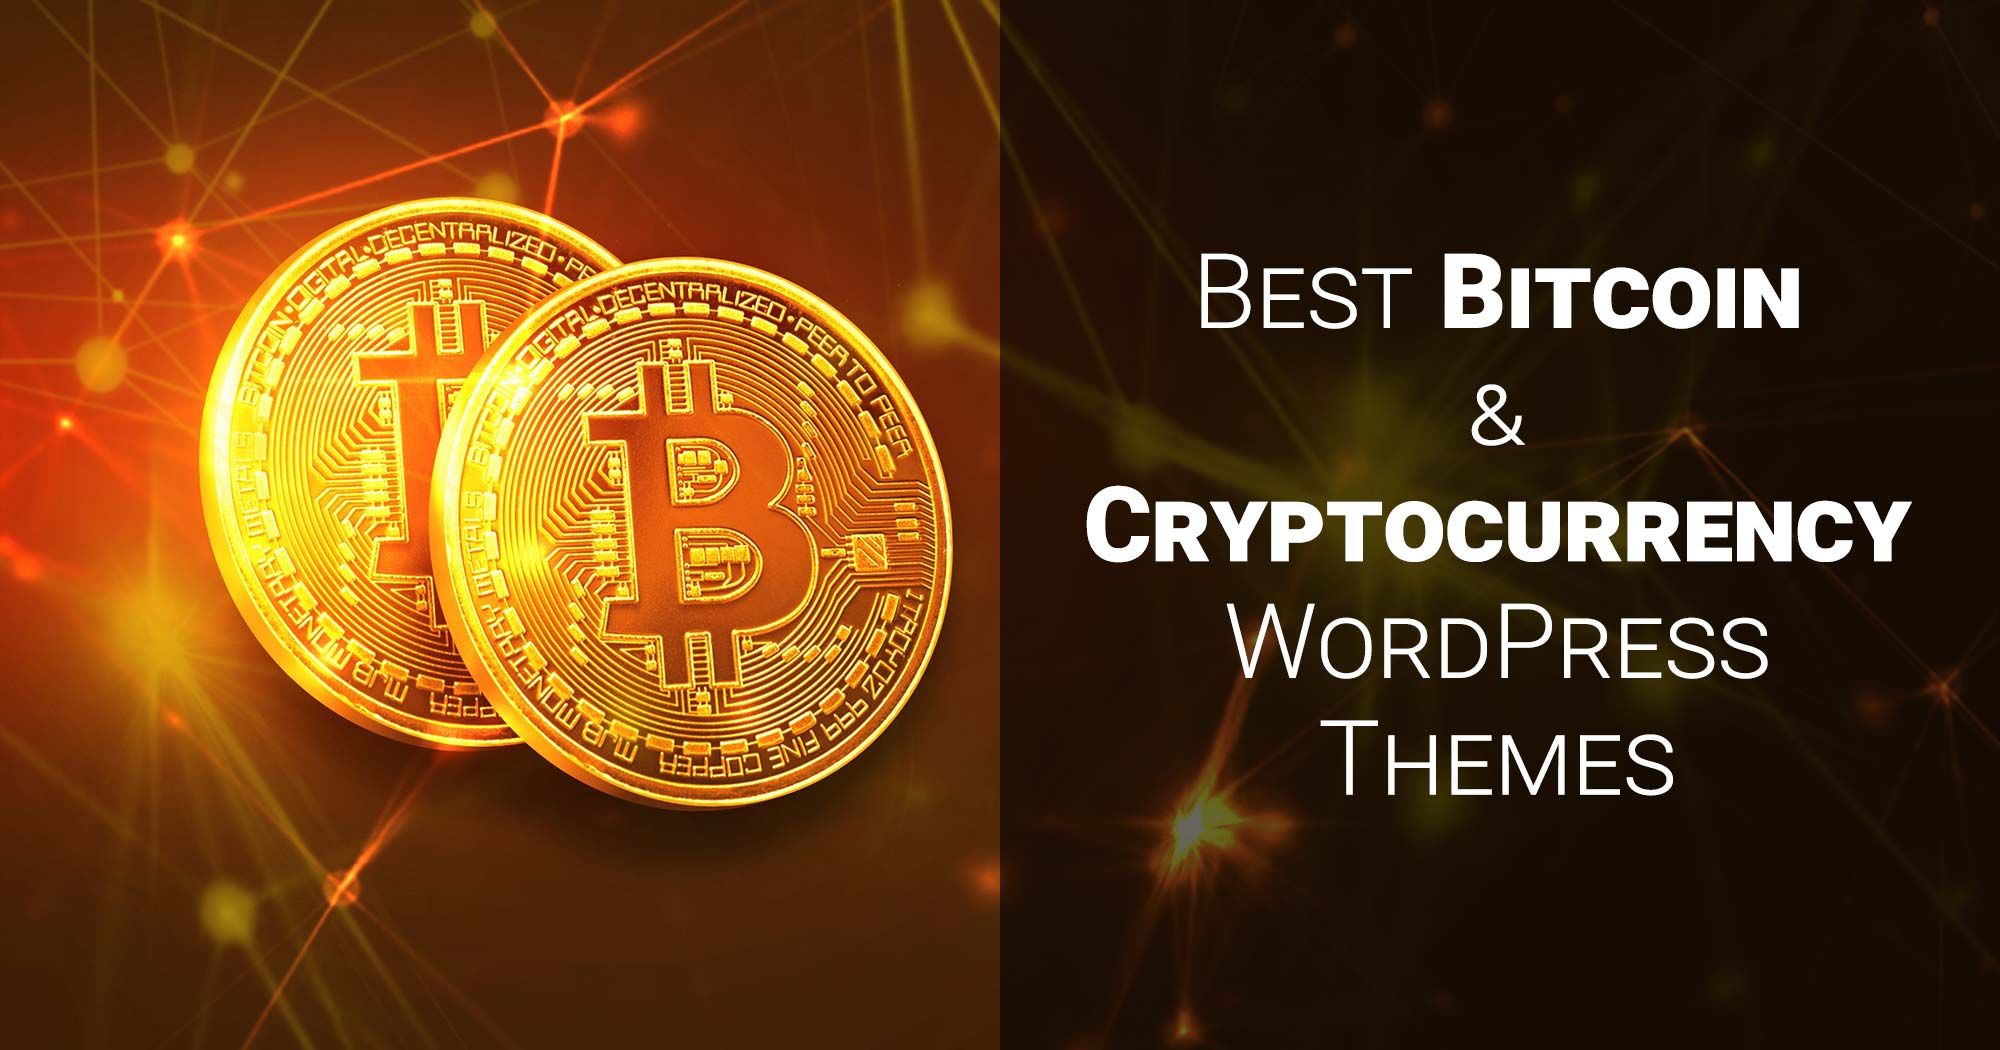 5 Best Bitcoin & Cryptocurrency WordPress Themes 2019